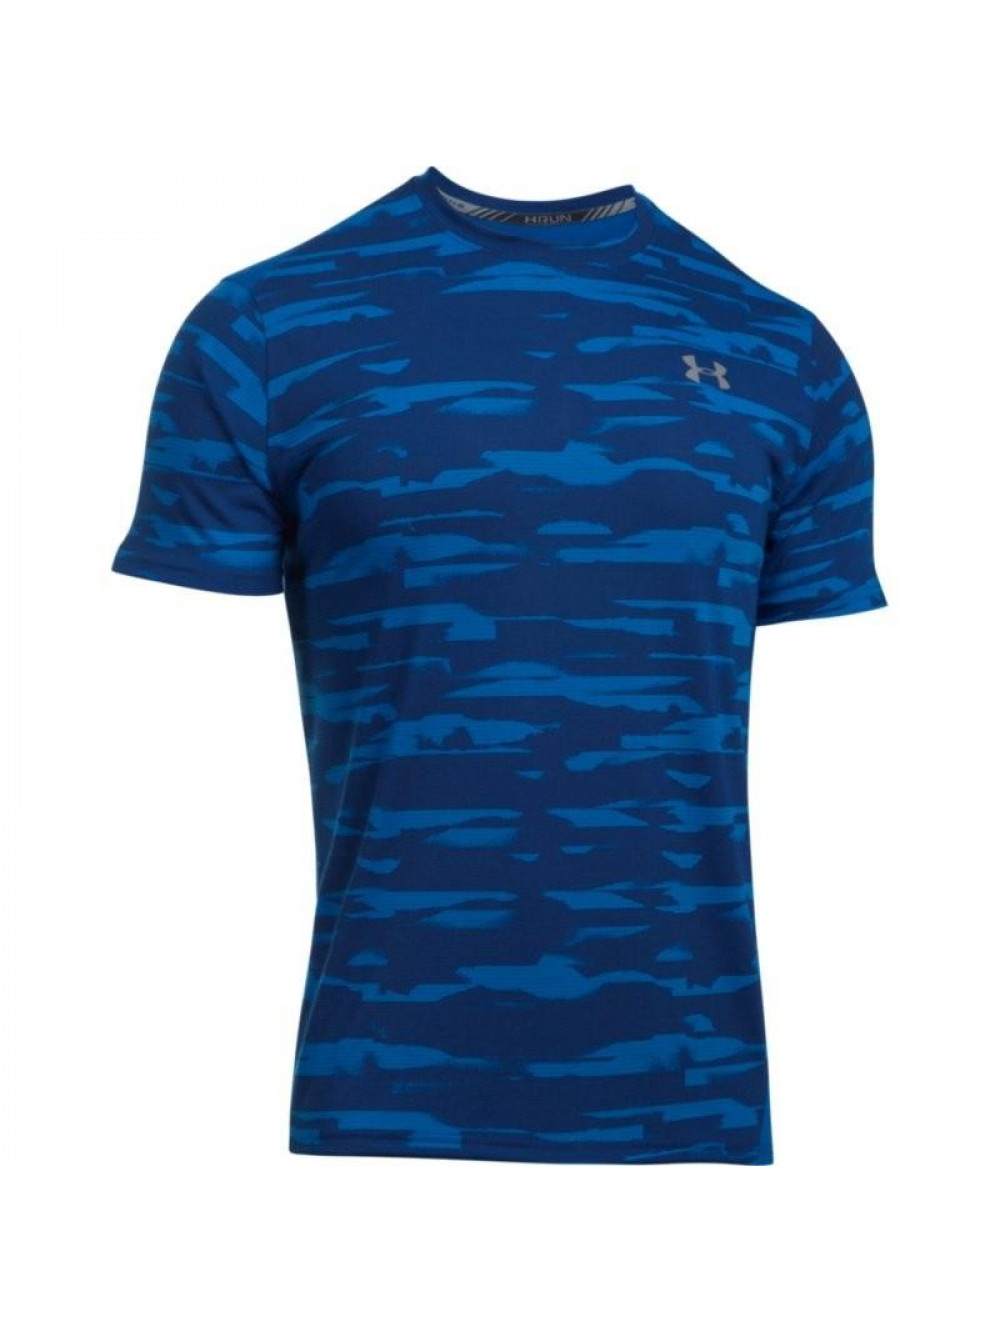 Tričko Under Armour Threadborne Run Mesh modré